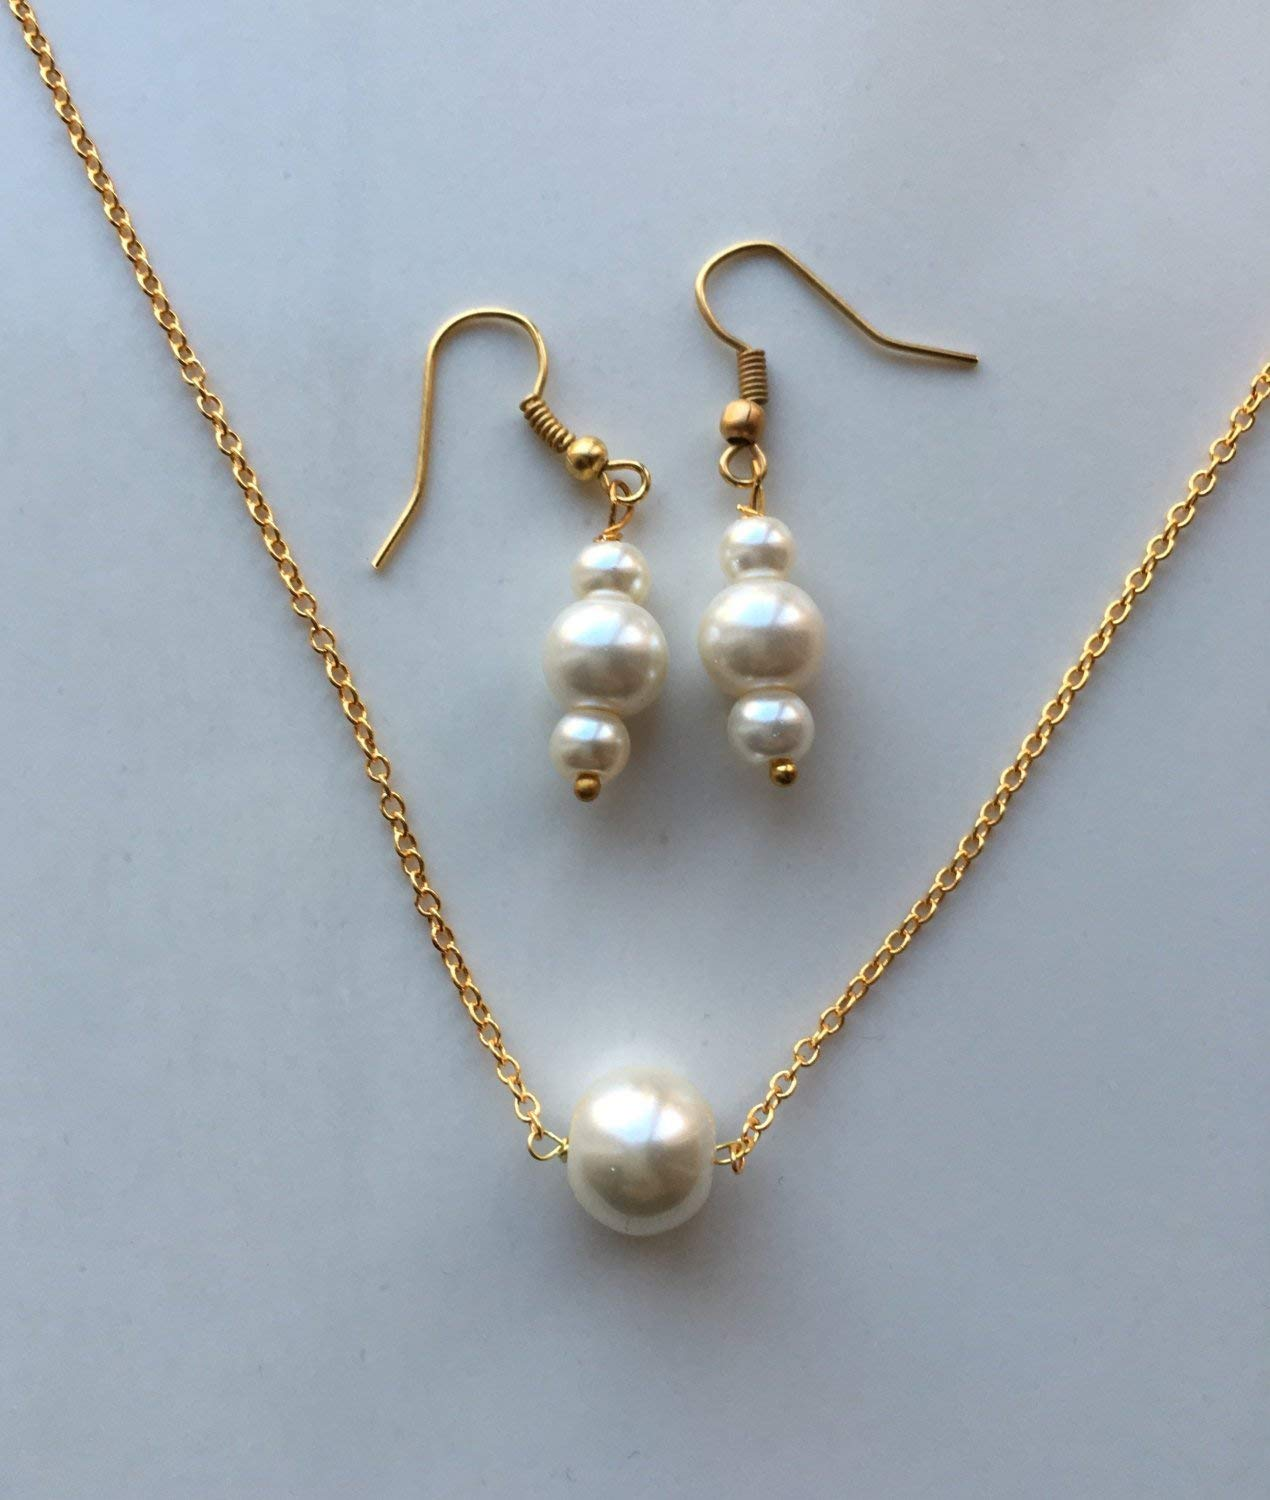 Ivory Pearl Necklace and Earring Set /Gold plated jewelry-Bridesmaid Jewelry Unique Gift Set/ Bridesmaid jewelry set of 4,5,6,7,8,9,10